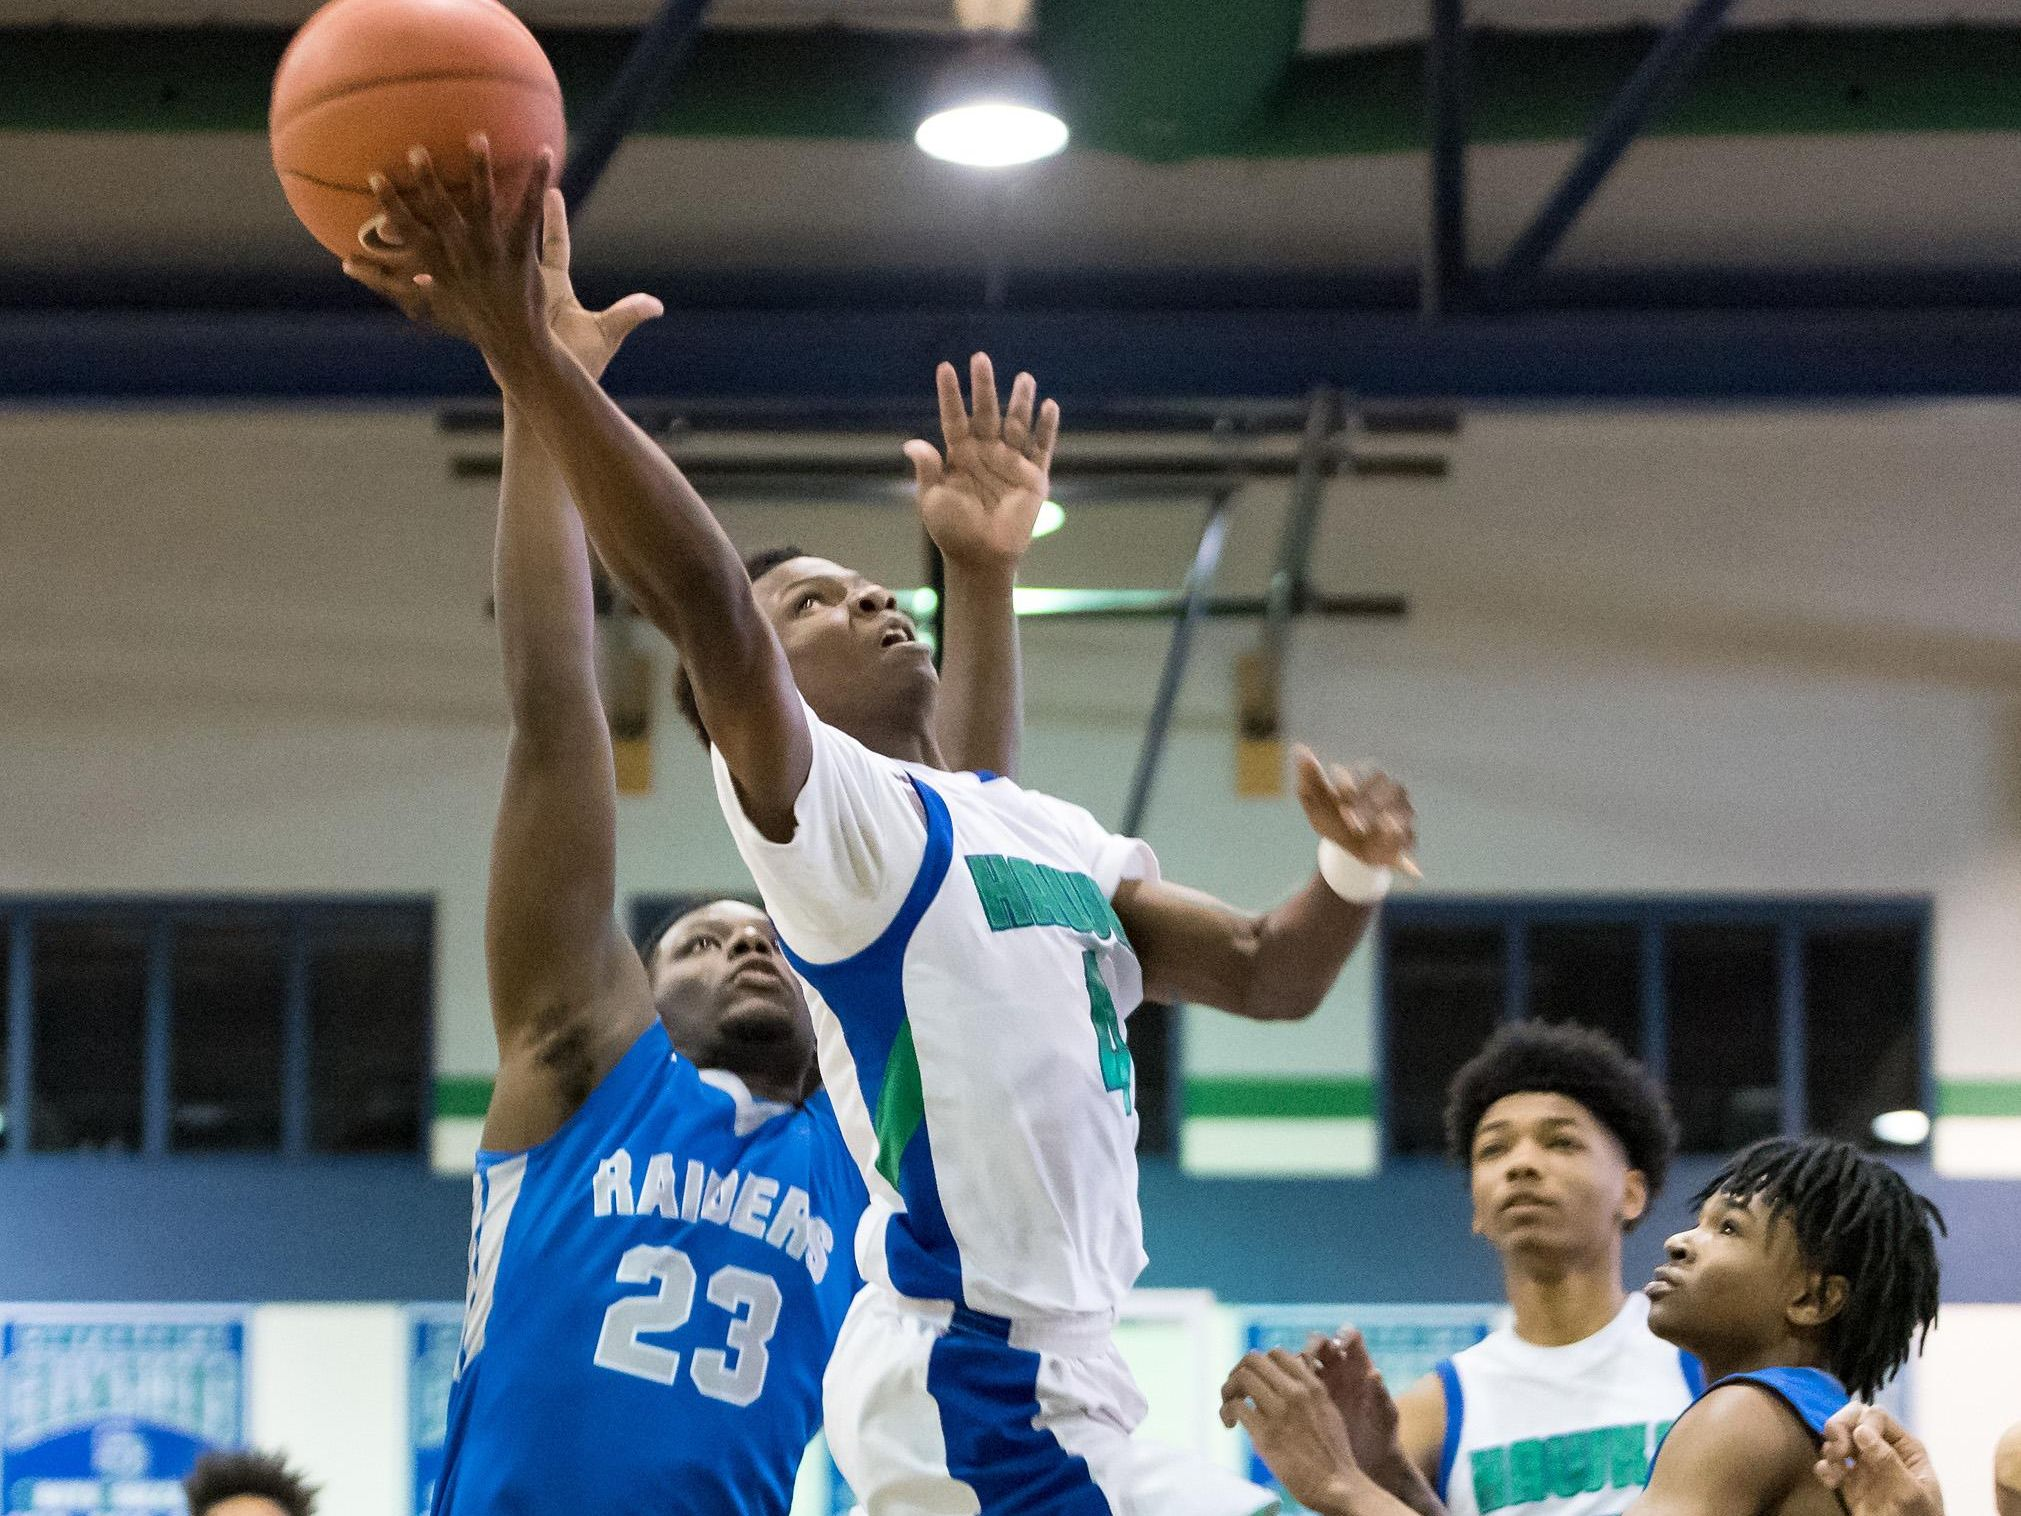 Prosper Tarley of St. Georges Technical takes the ball to the net as Shymere Vessels of Woodbridge tries to defend in boys basketball at St. Georges Technical High School in Middletown on Saturday afternoon.